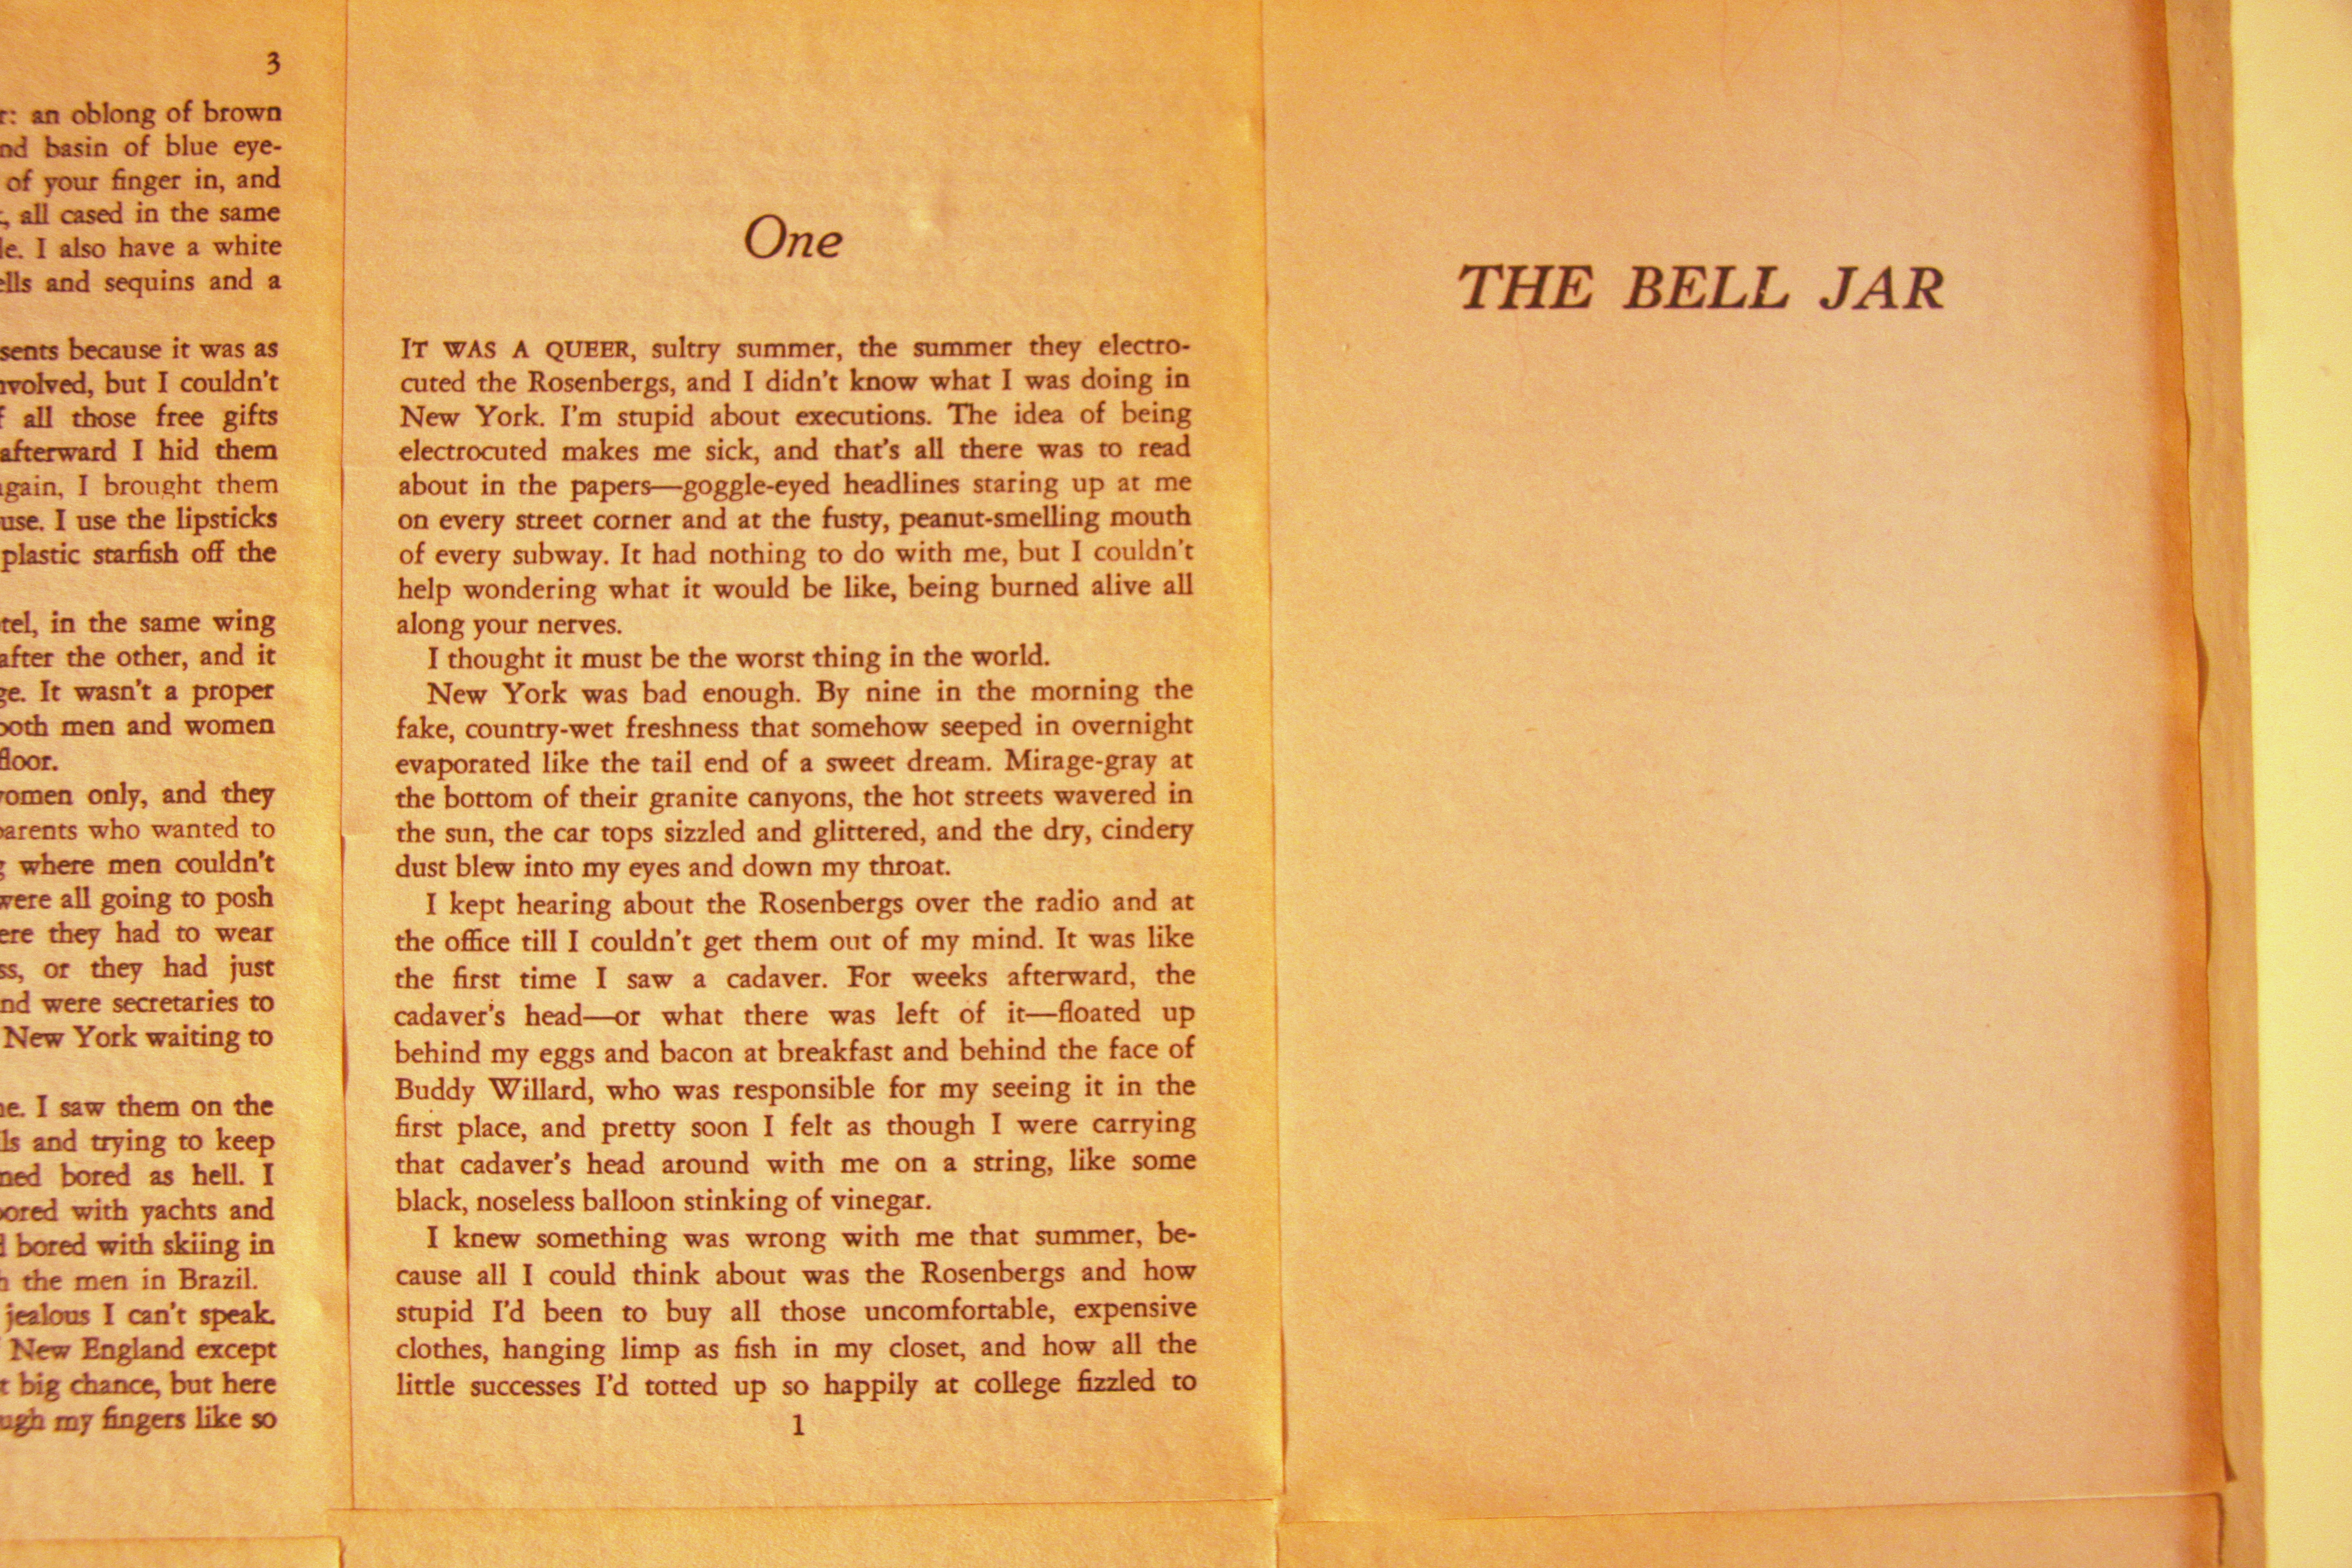 the bell jar essay the bell jar term paper essay on the bell jar